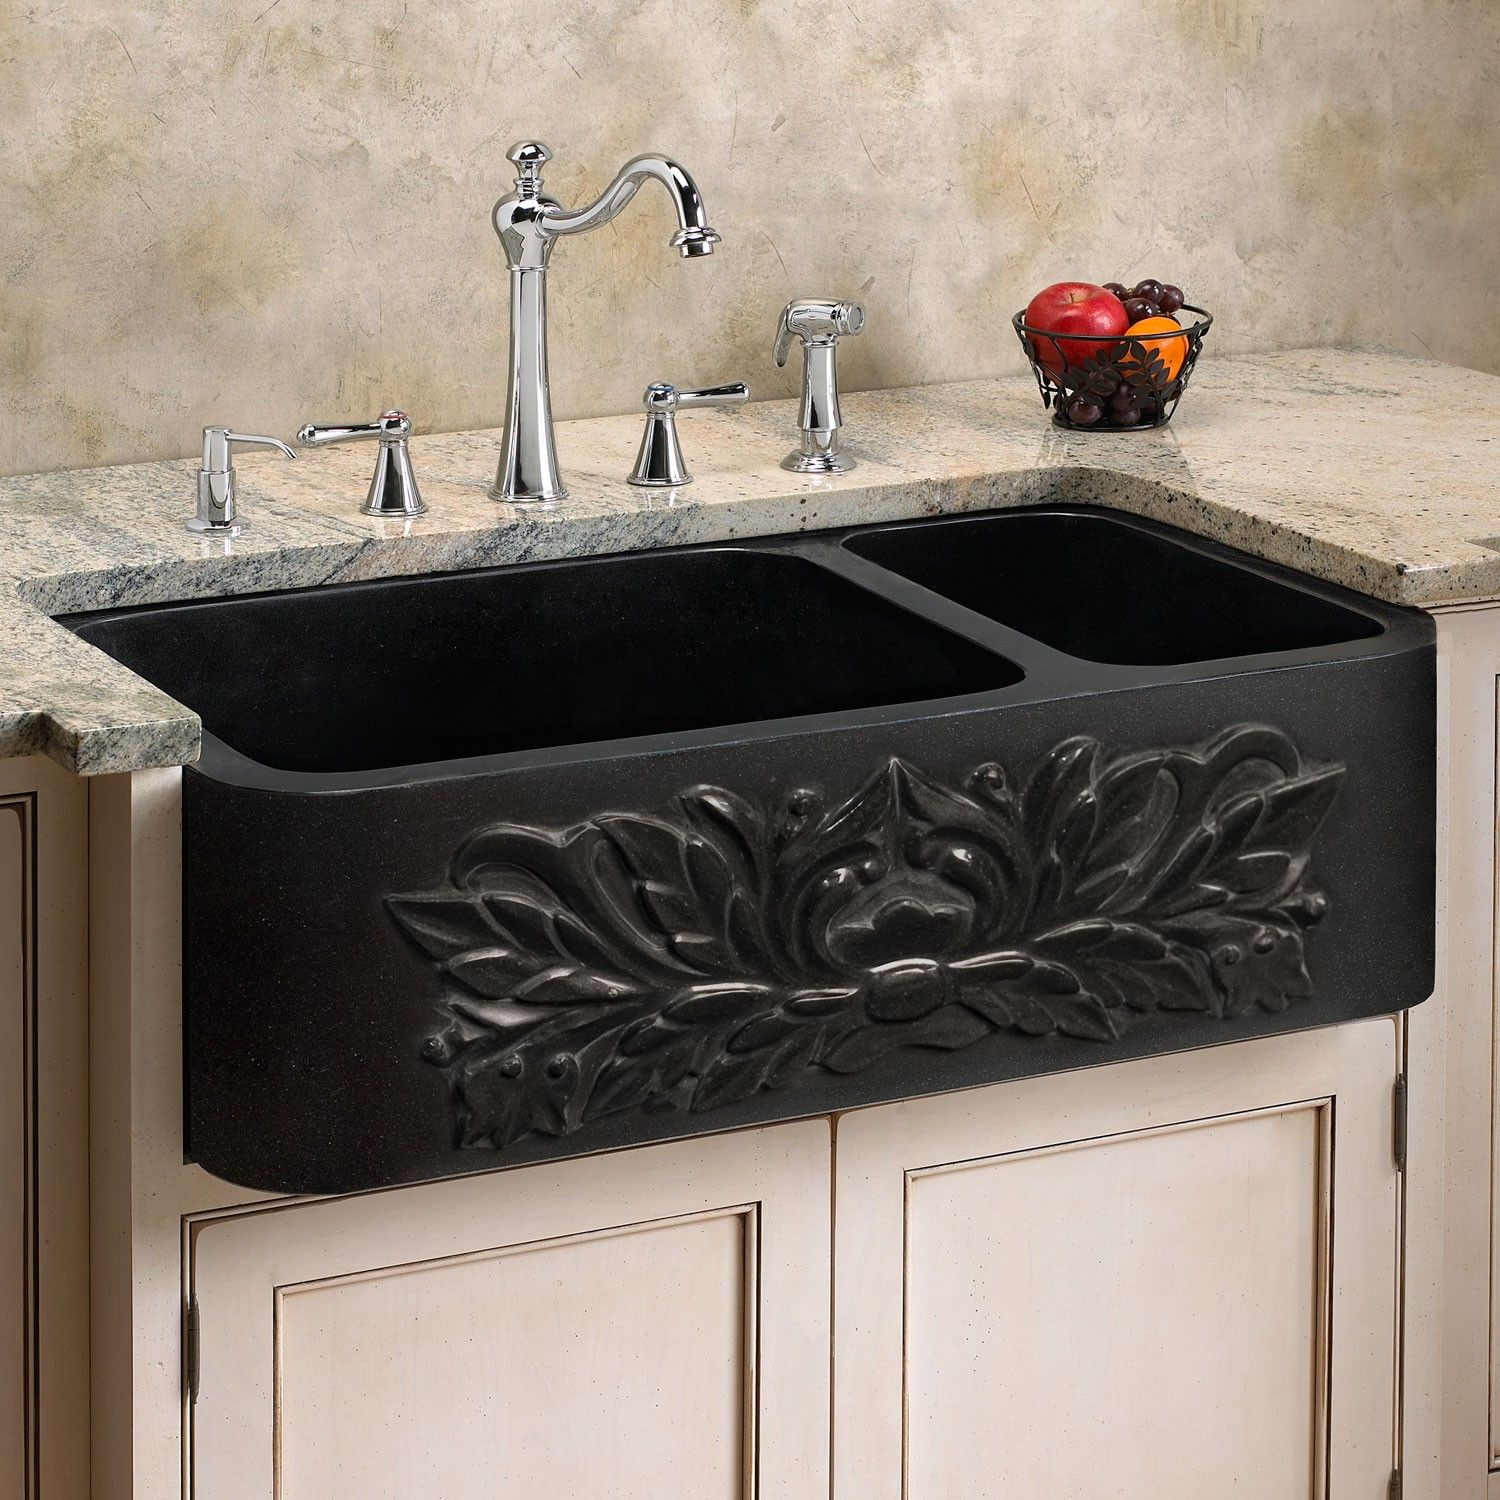 33 Ivy Polished Granite 70 30 Offset Double Well Farmhouse Sink Black Kitchen Sinks Kitchen Black Farmhouse Sink Farmhouse Sink Kitchen